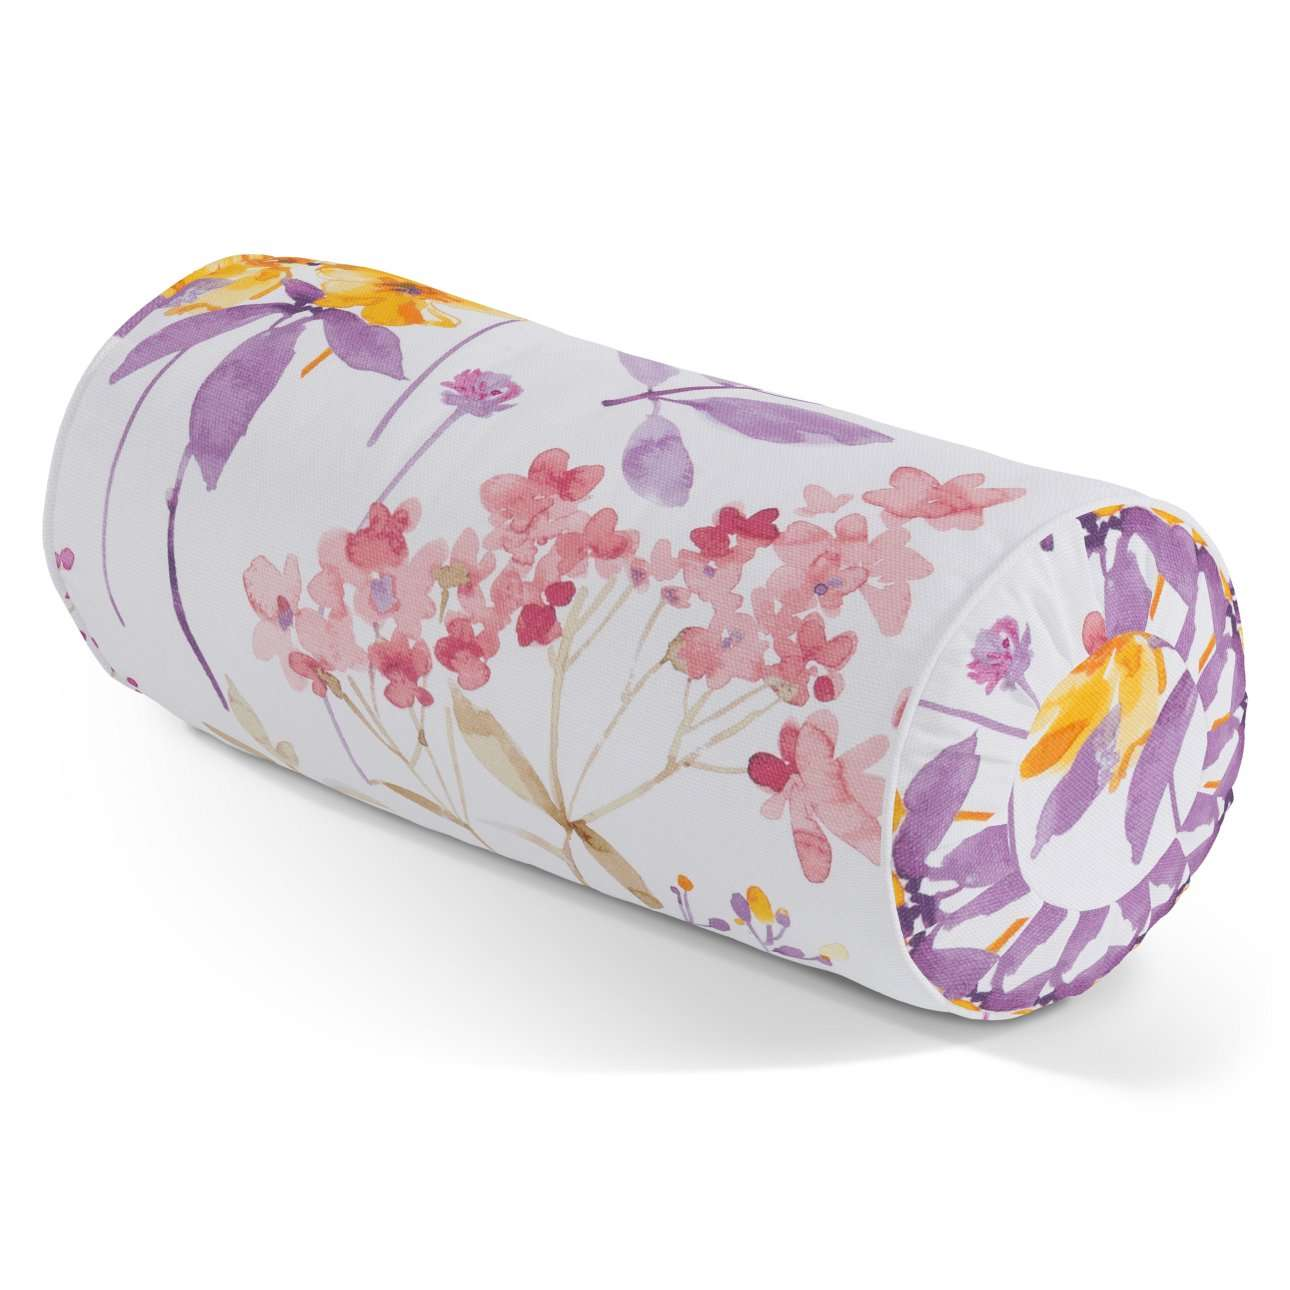 Bolster cushion with pleats in collection Monet, fabric: 140-04